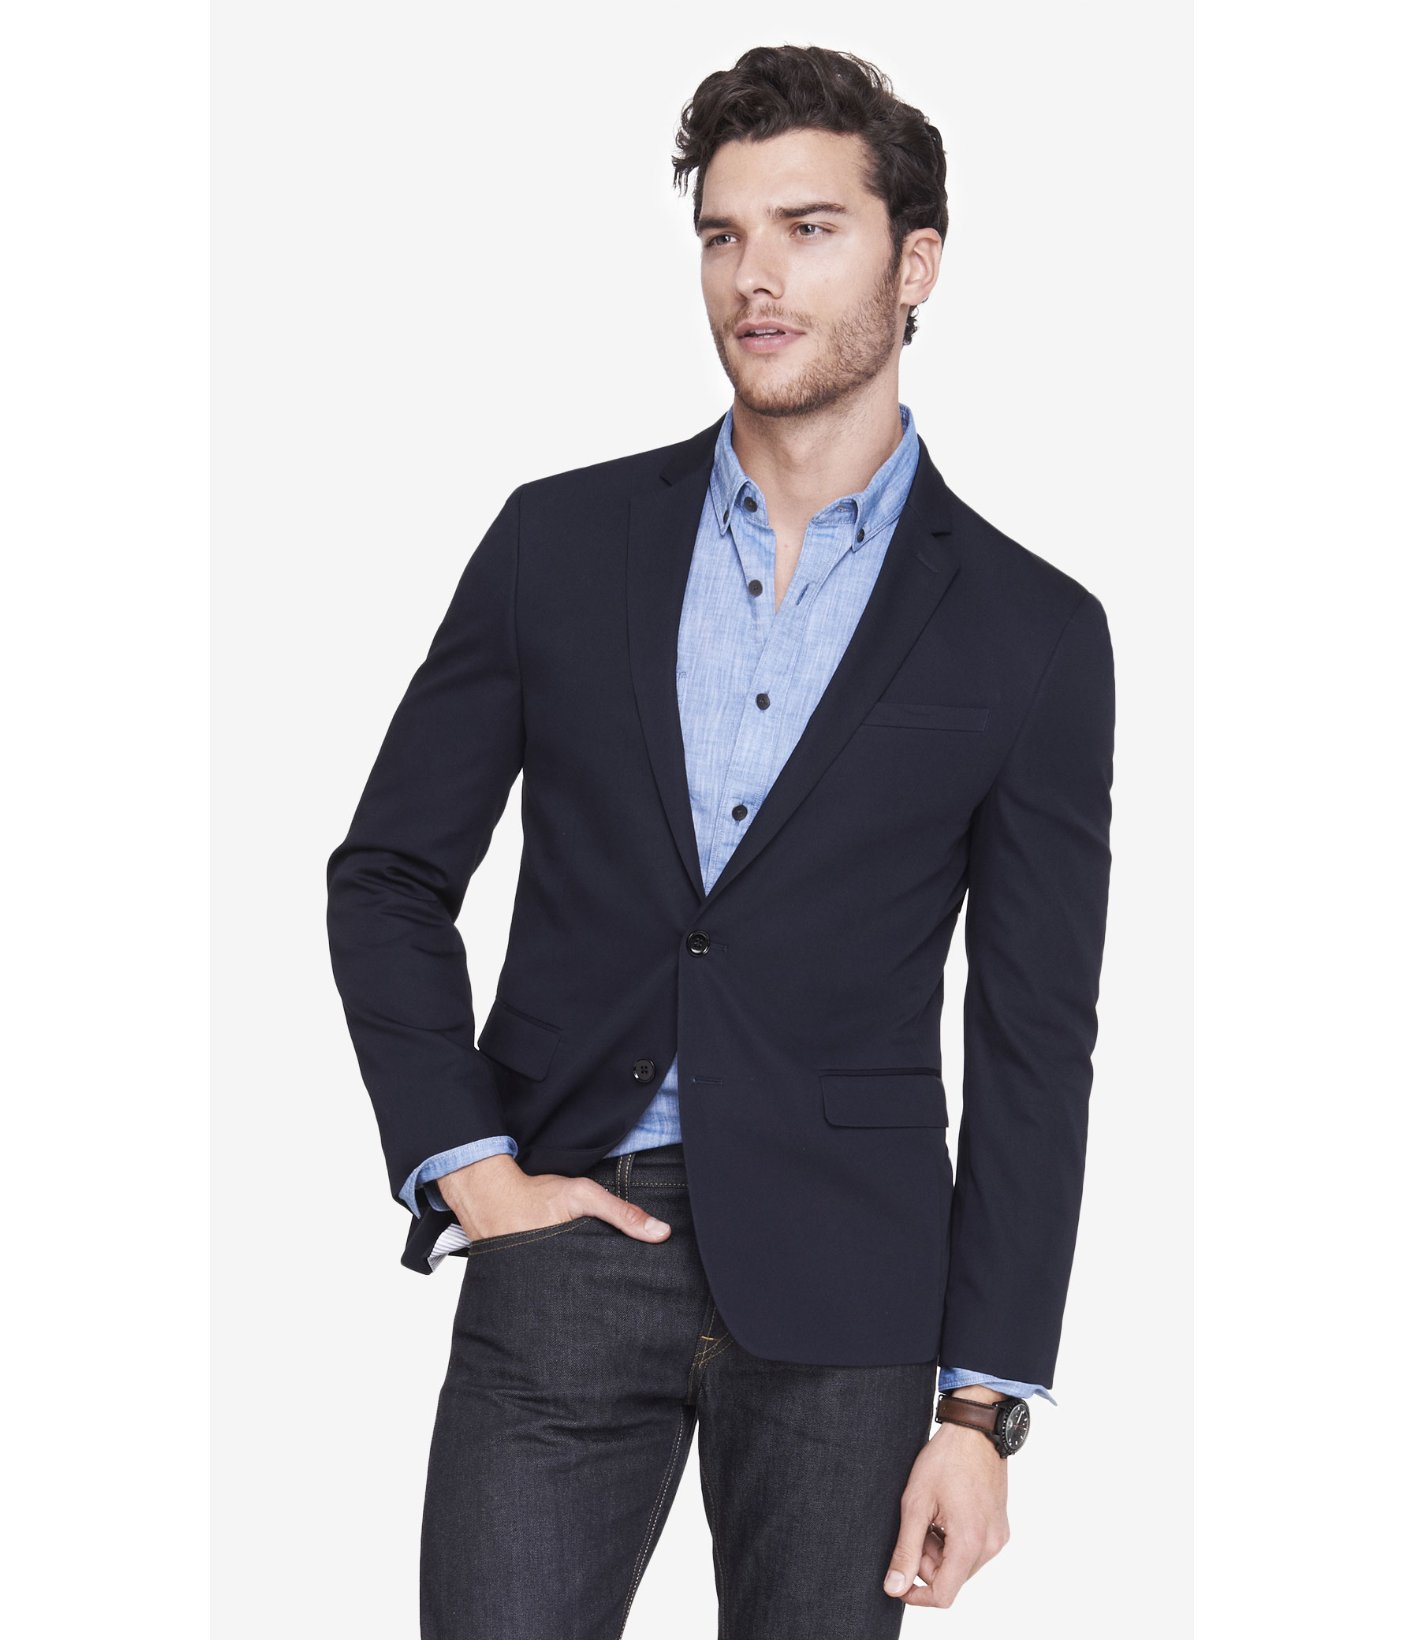 While blazers come in various colors, the most traditional and versatile of this already flexible garment is navy blue. Sharp and masculine, a navy blazer looks great and goes with just about everything.